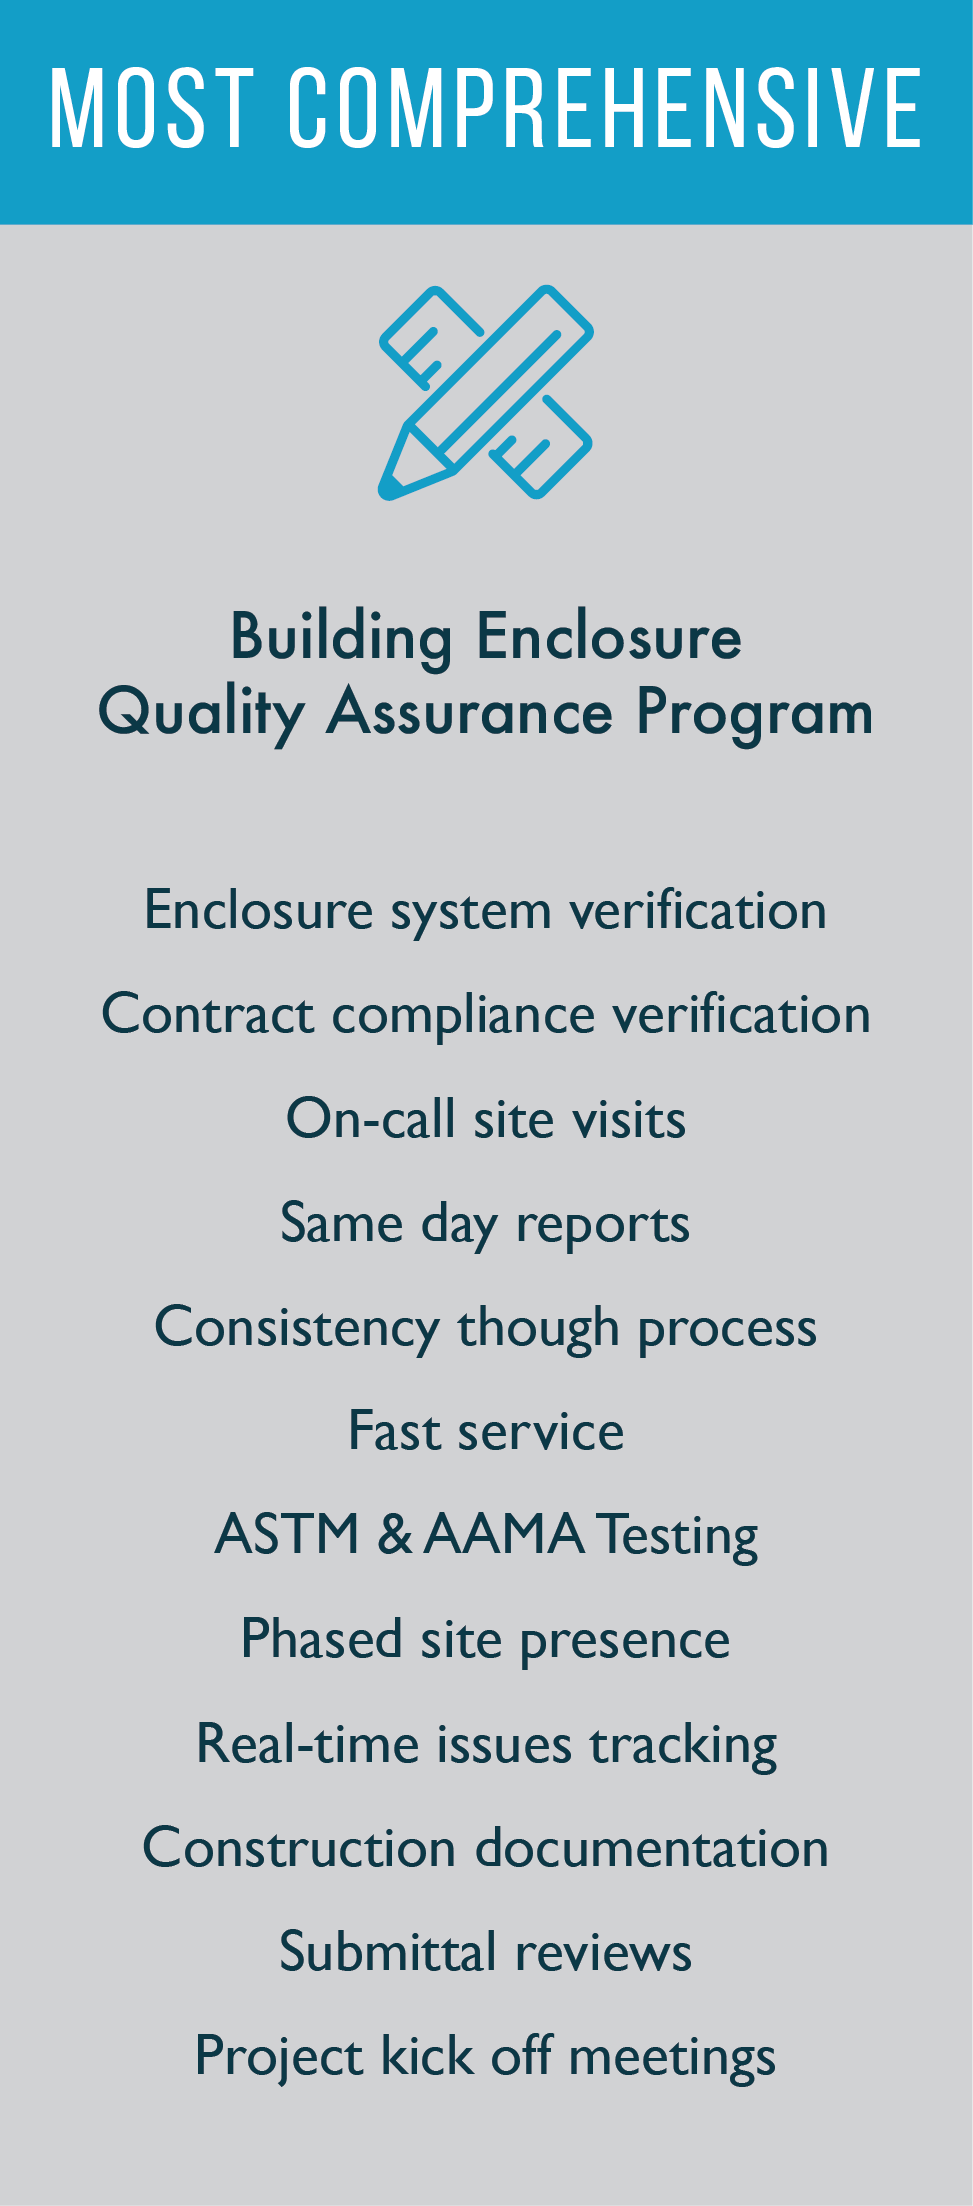 Comprehensive building enclosure quality assurance program